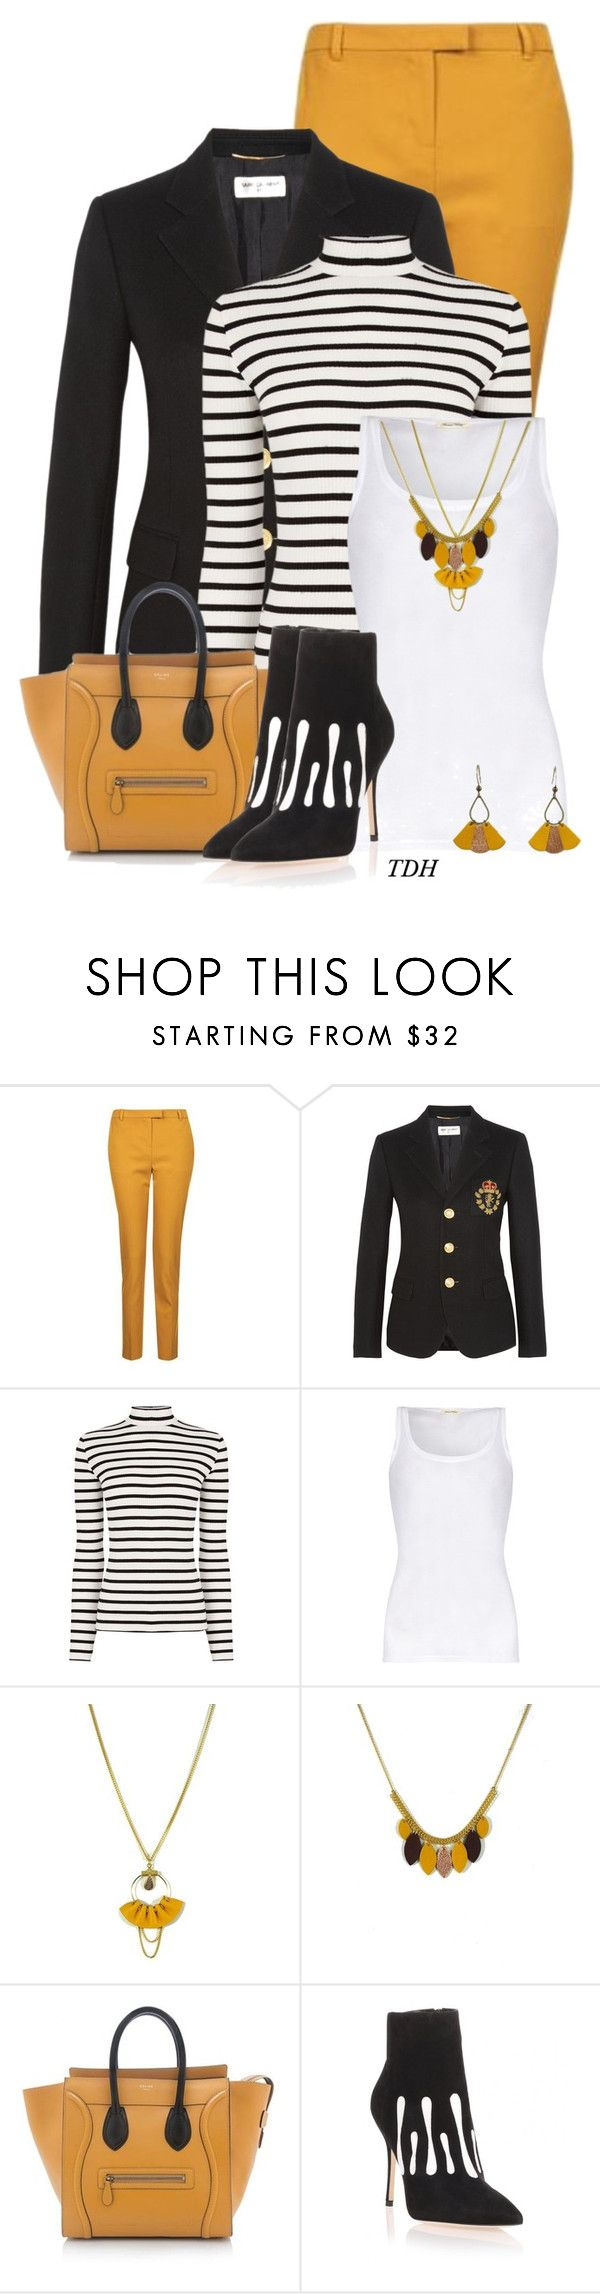 """Striped Jumper"" by talvadh ❤ liked on Polyvore featuring Topshop, Yves Saint Laurent, Oasis, American Vintage, Atelier Maï Martin, CÉLINE and Manolo Blahnik"